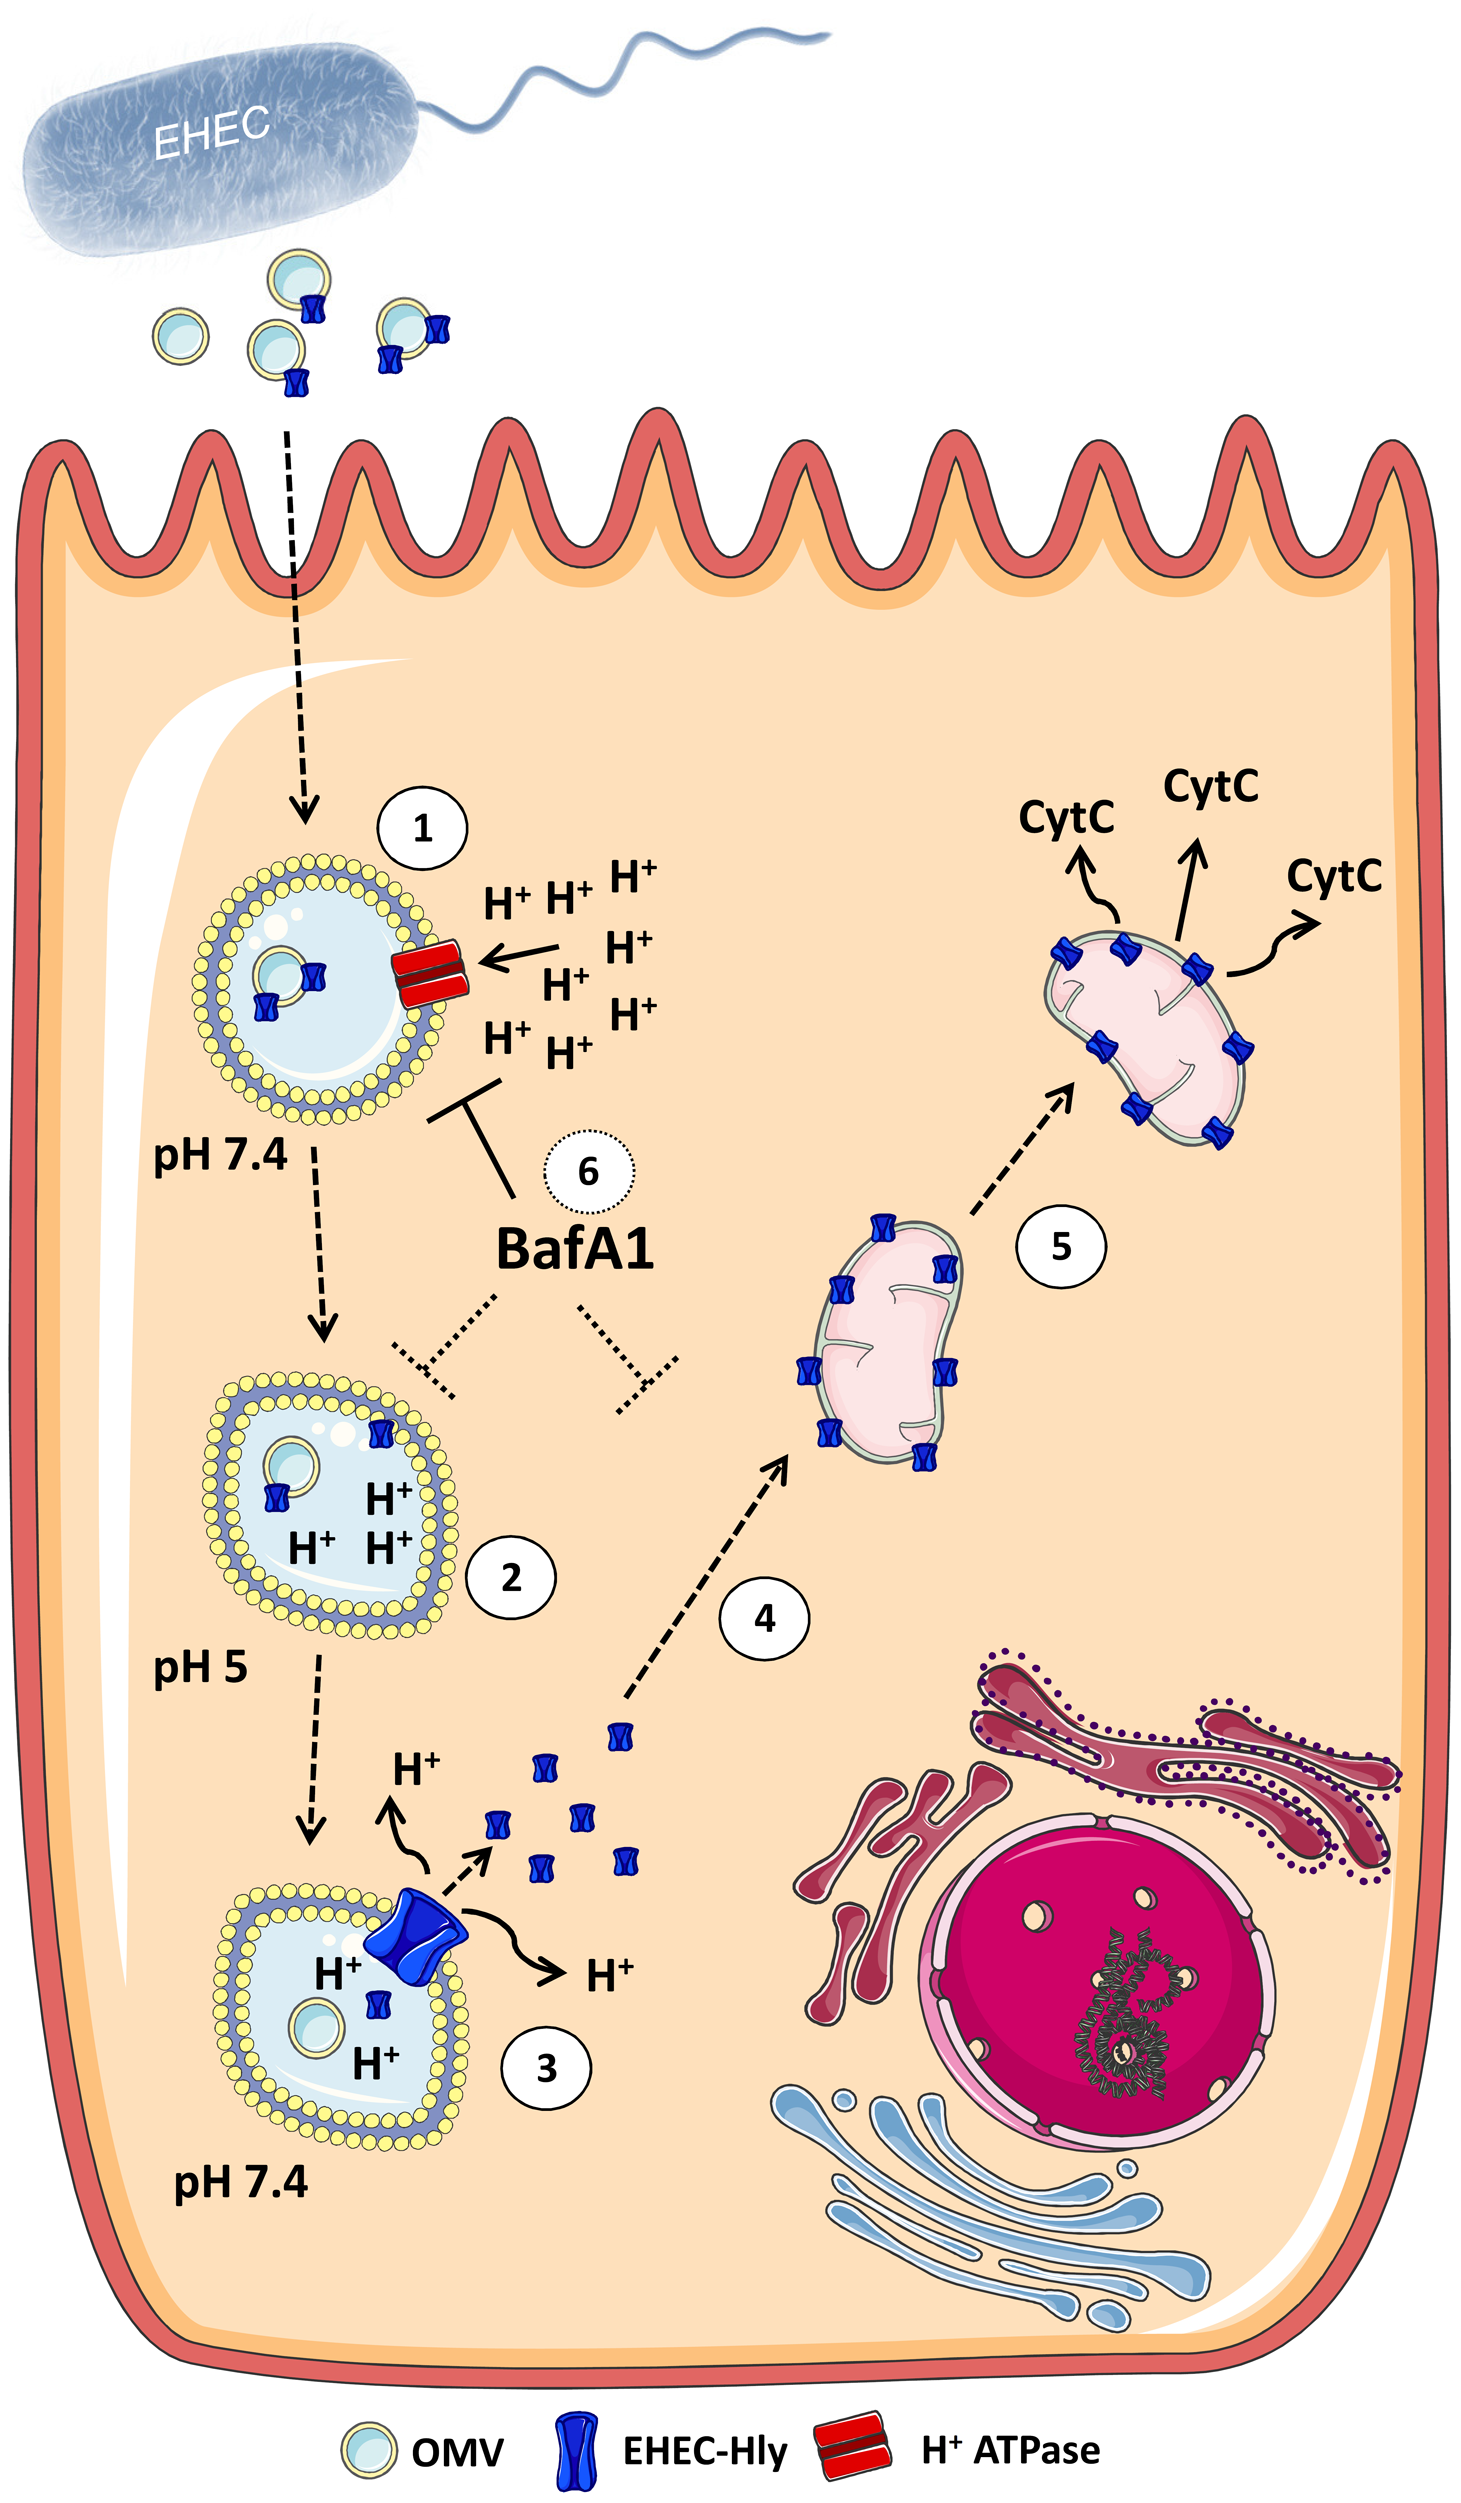 Model of intracellular trafficking and action of OMV-associated EHEC-Hly.